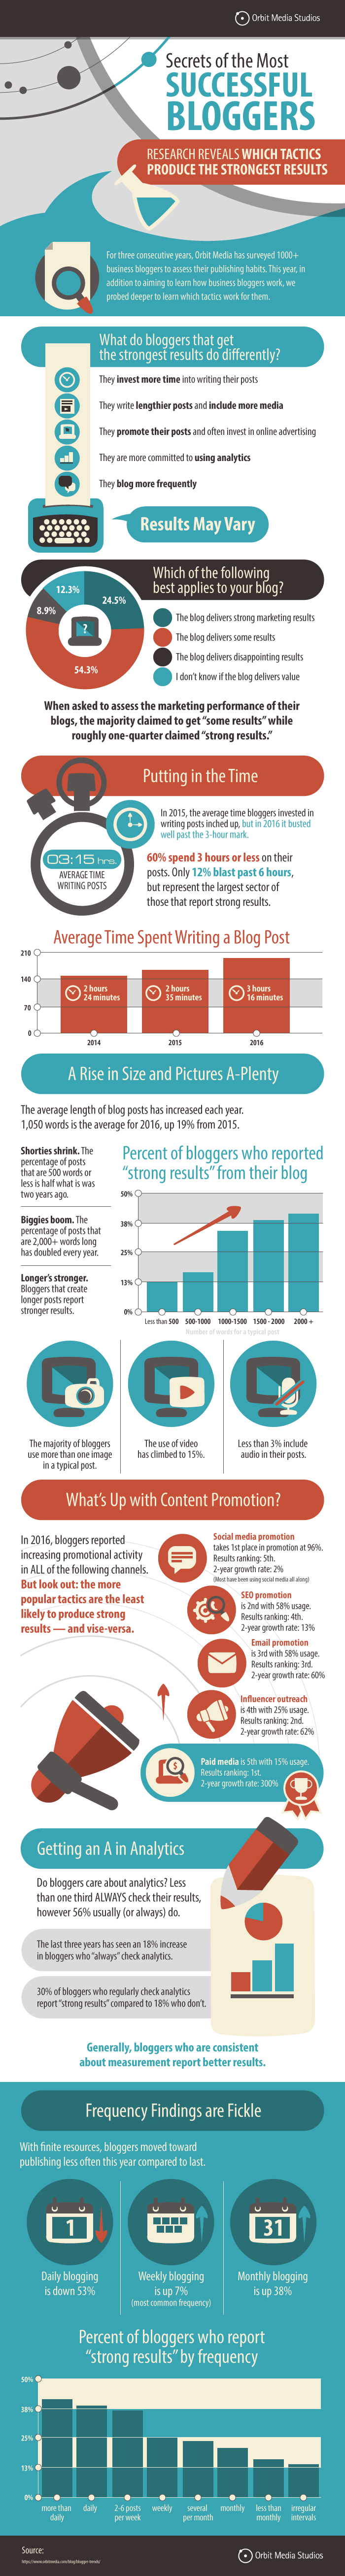 Which Blogging Tactics Produce the Strongest Results? [Infographic]